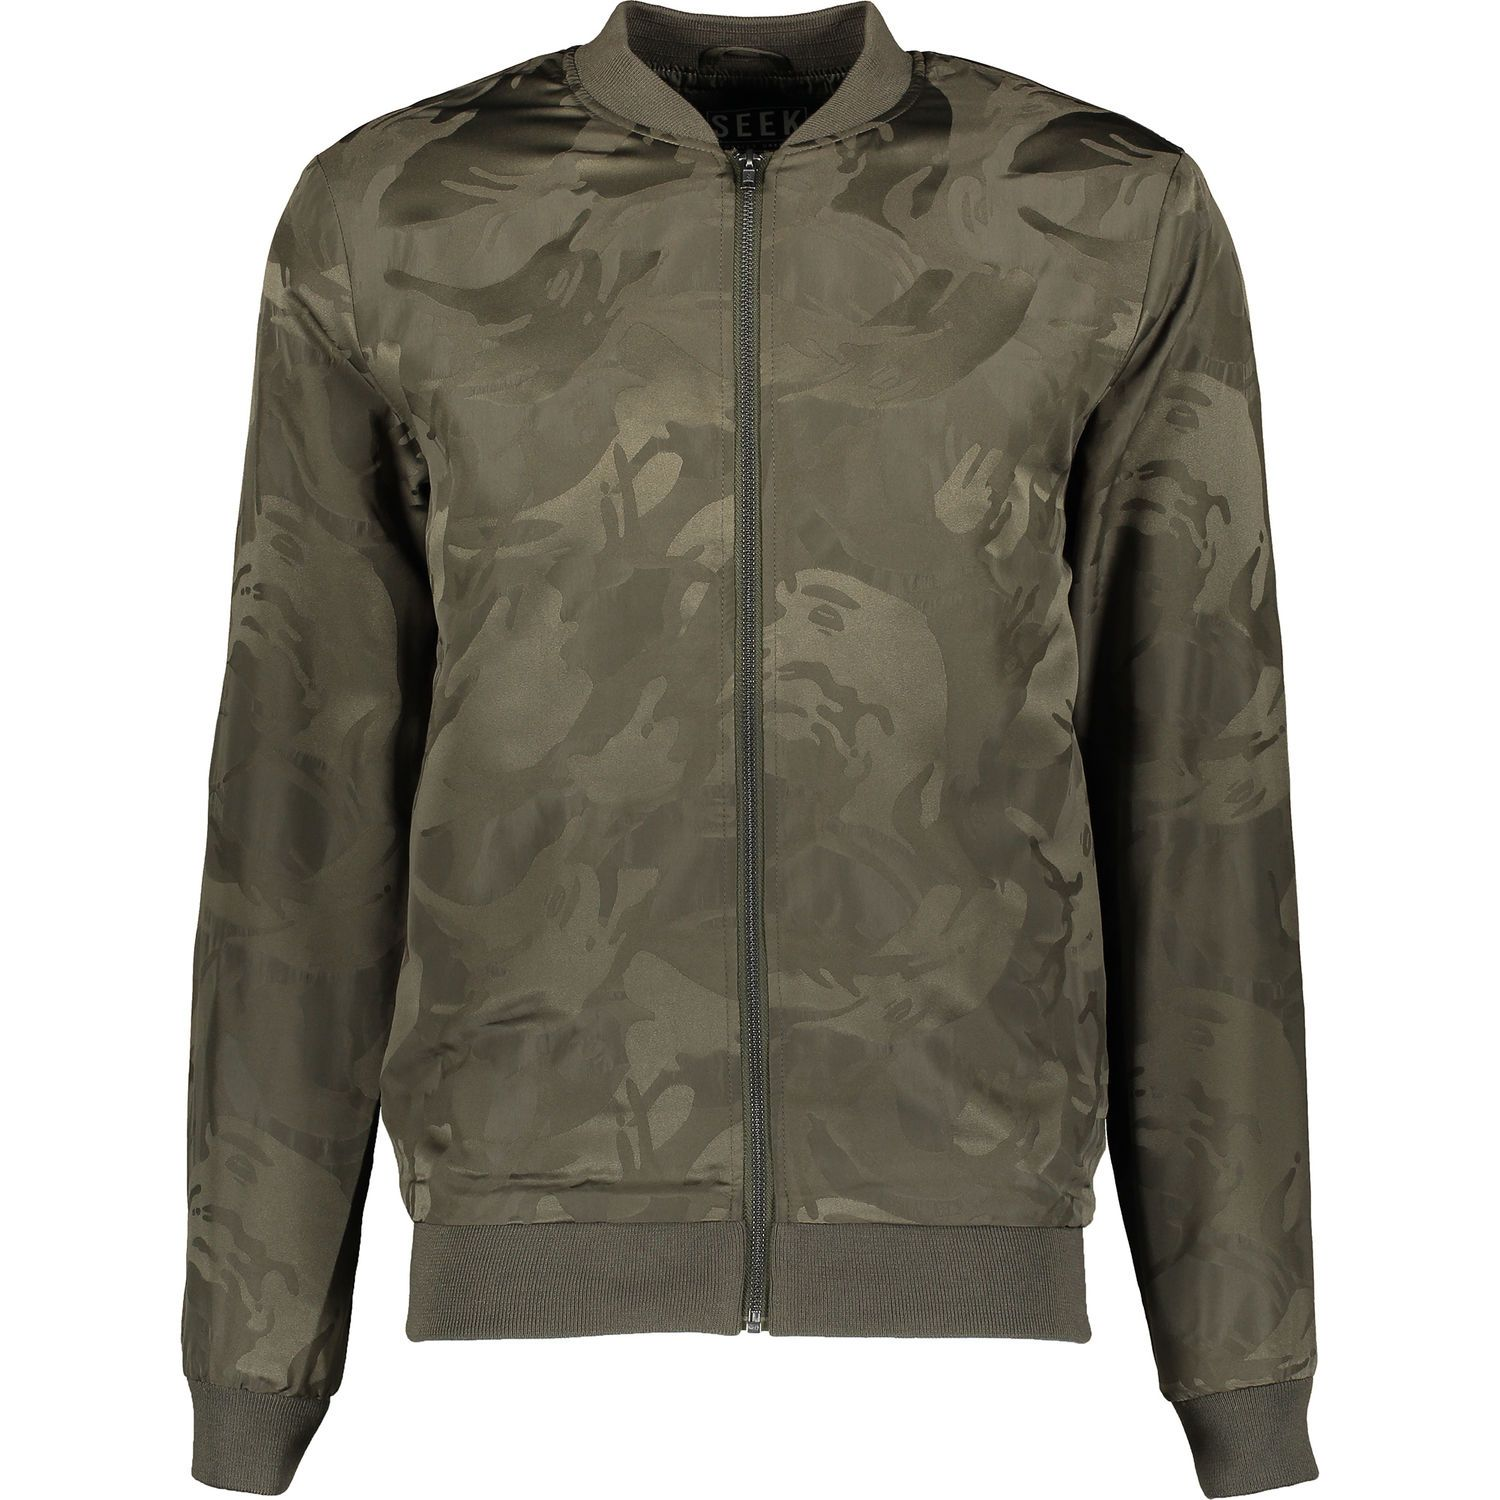 Green Camouflage Bomber Jacket Mod Box Clothing Men 39 S Mod Box Collections Tk Maxx Camouflage Bomber Jacket Mens Jackets Bomber Jacket [ 1500 x 1500 Pixel ]